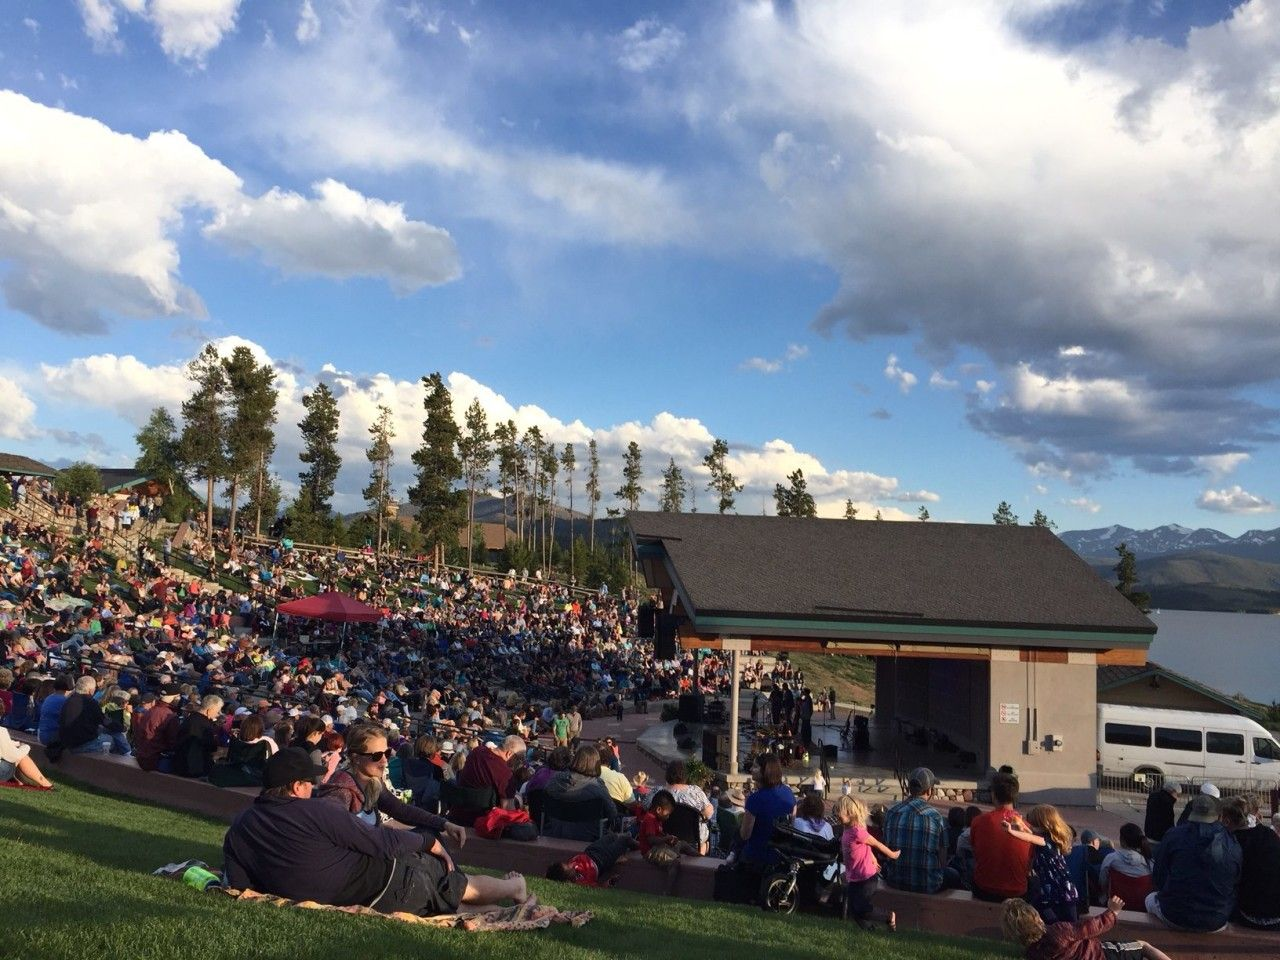 Checkout the sweet lineup of free summer concerts at the